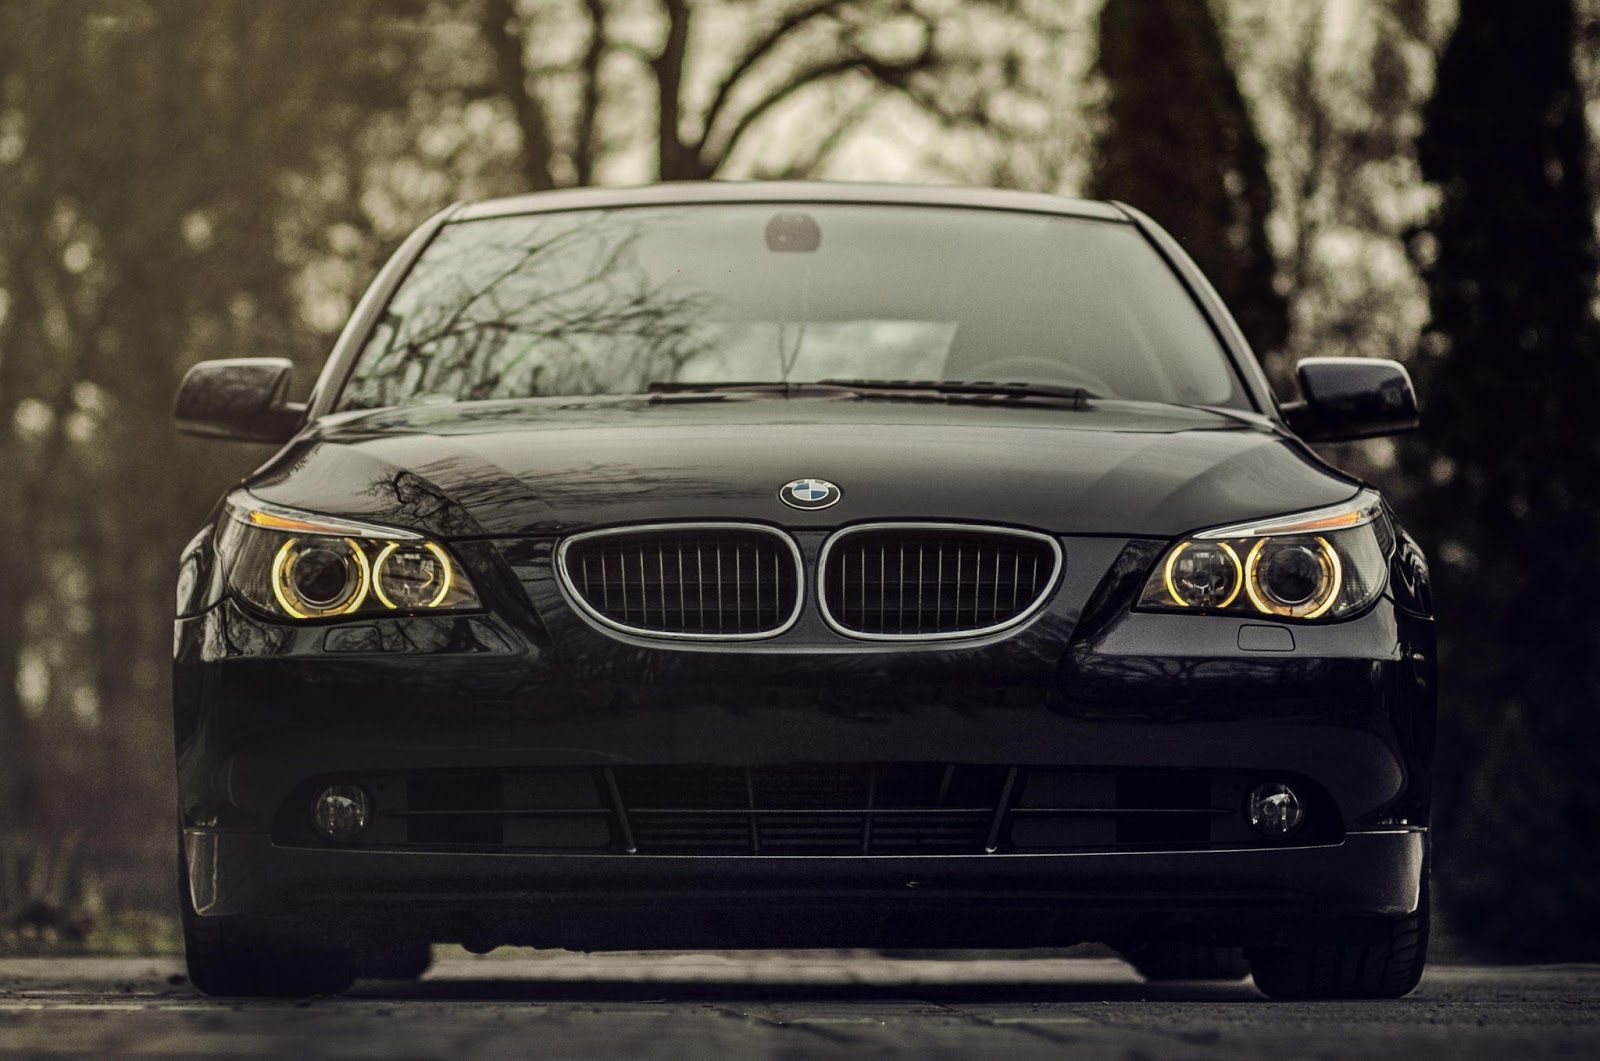 bmw 520d black front view front bumper - full hd 1080p cars